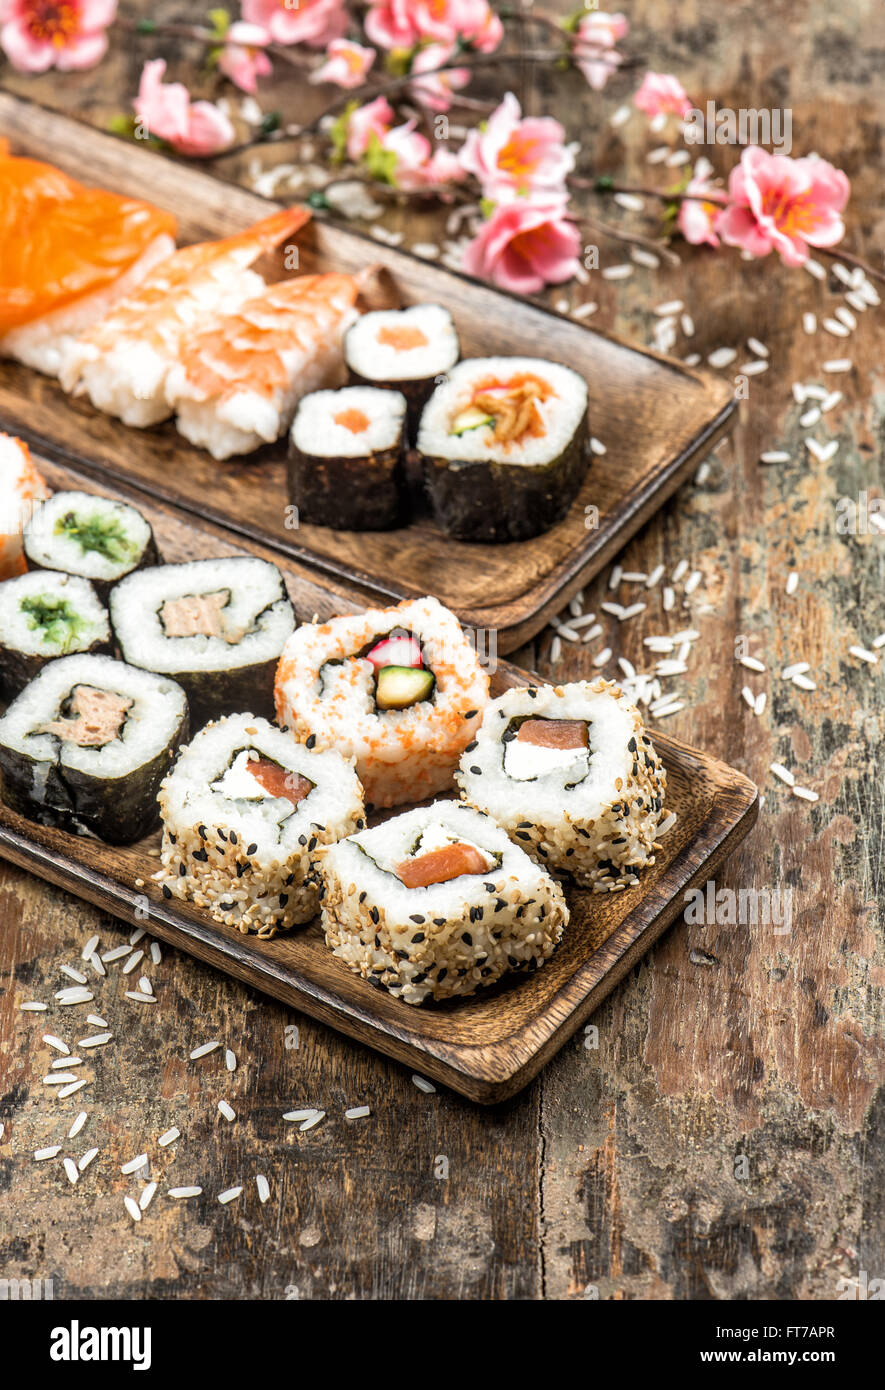 Sushi, maki, sashimi and sushi rolls on wooden background with spring flowers - Stock Image